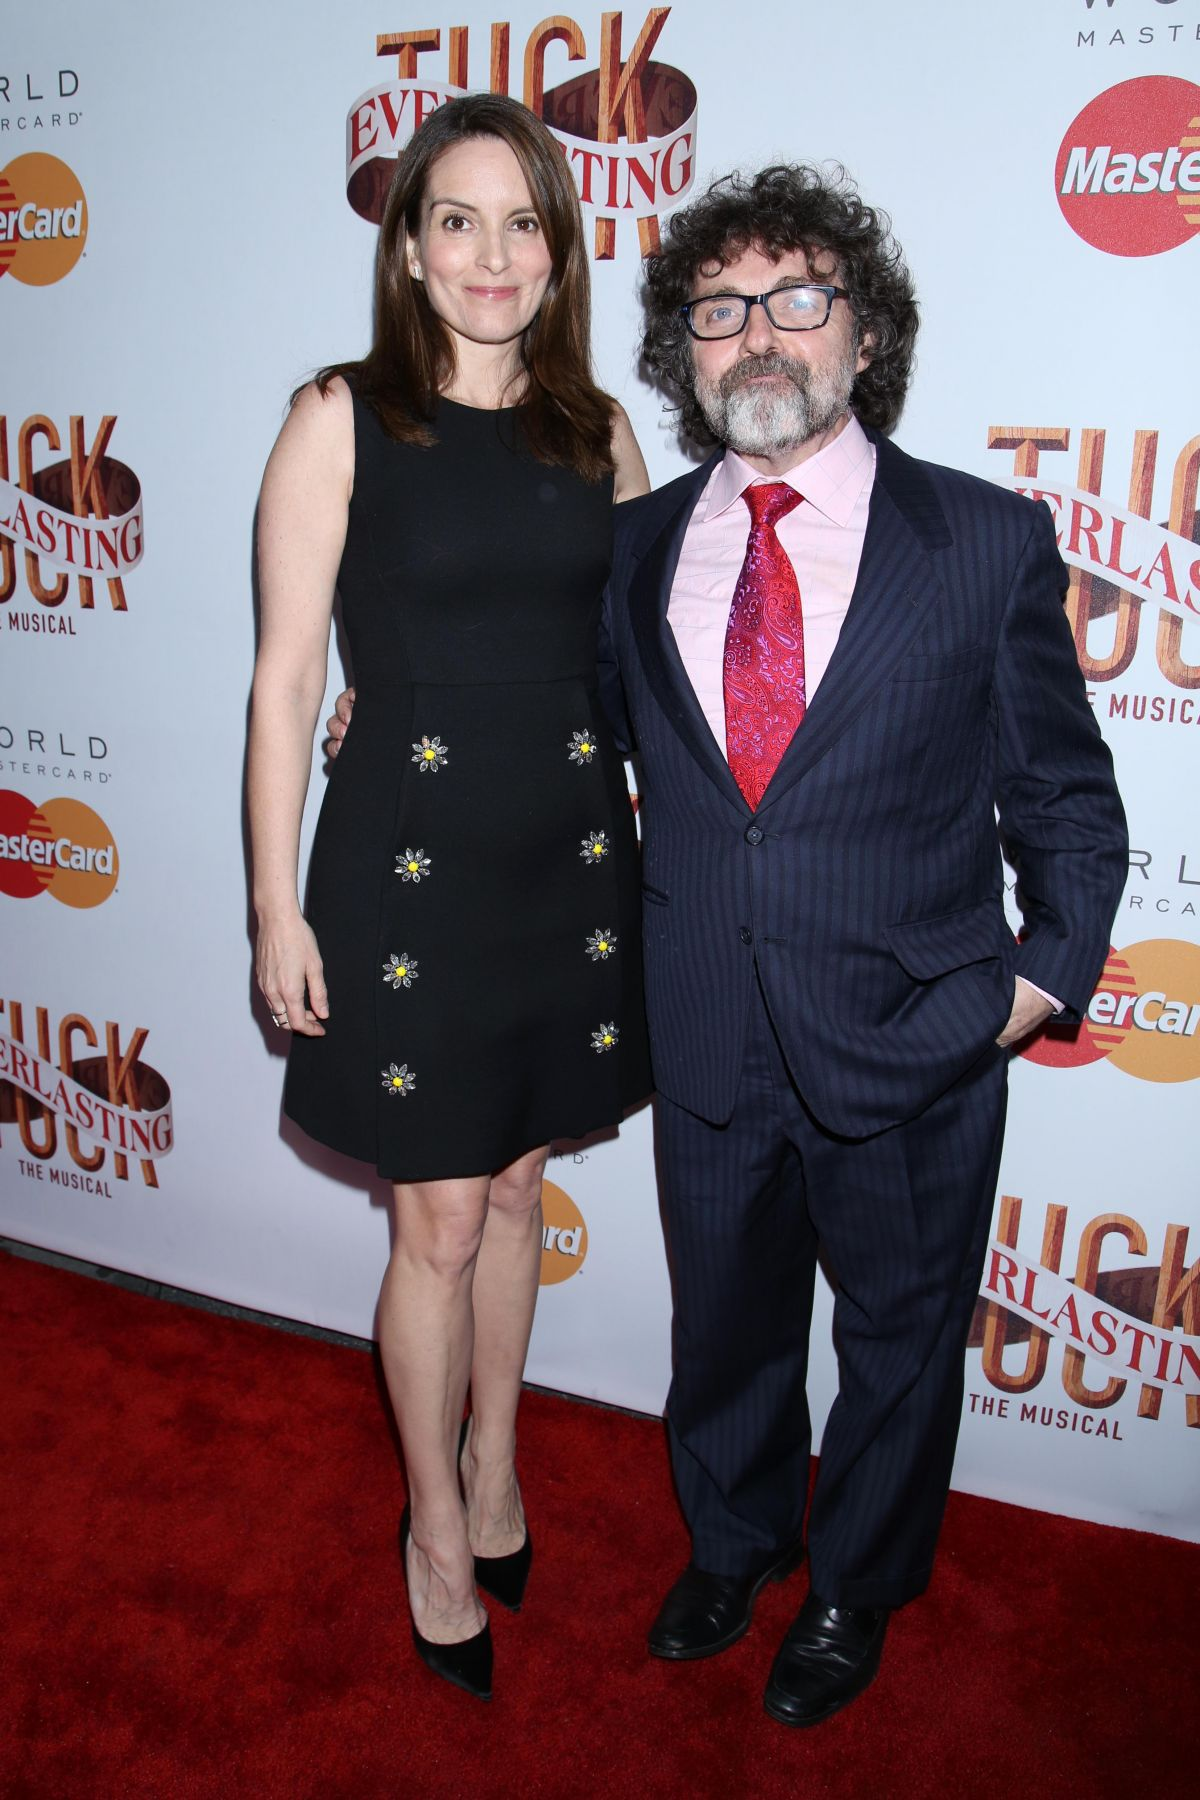 TINA FEY at Opening Night of Tuck Everlasting in New York 04/26/2016